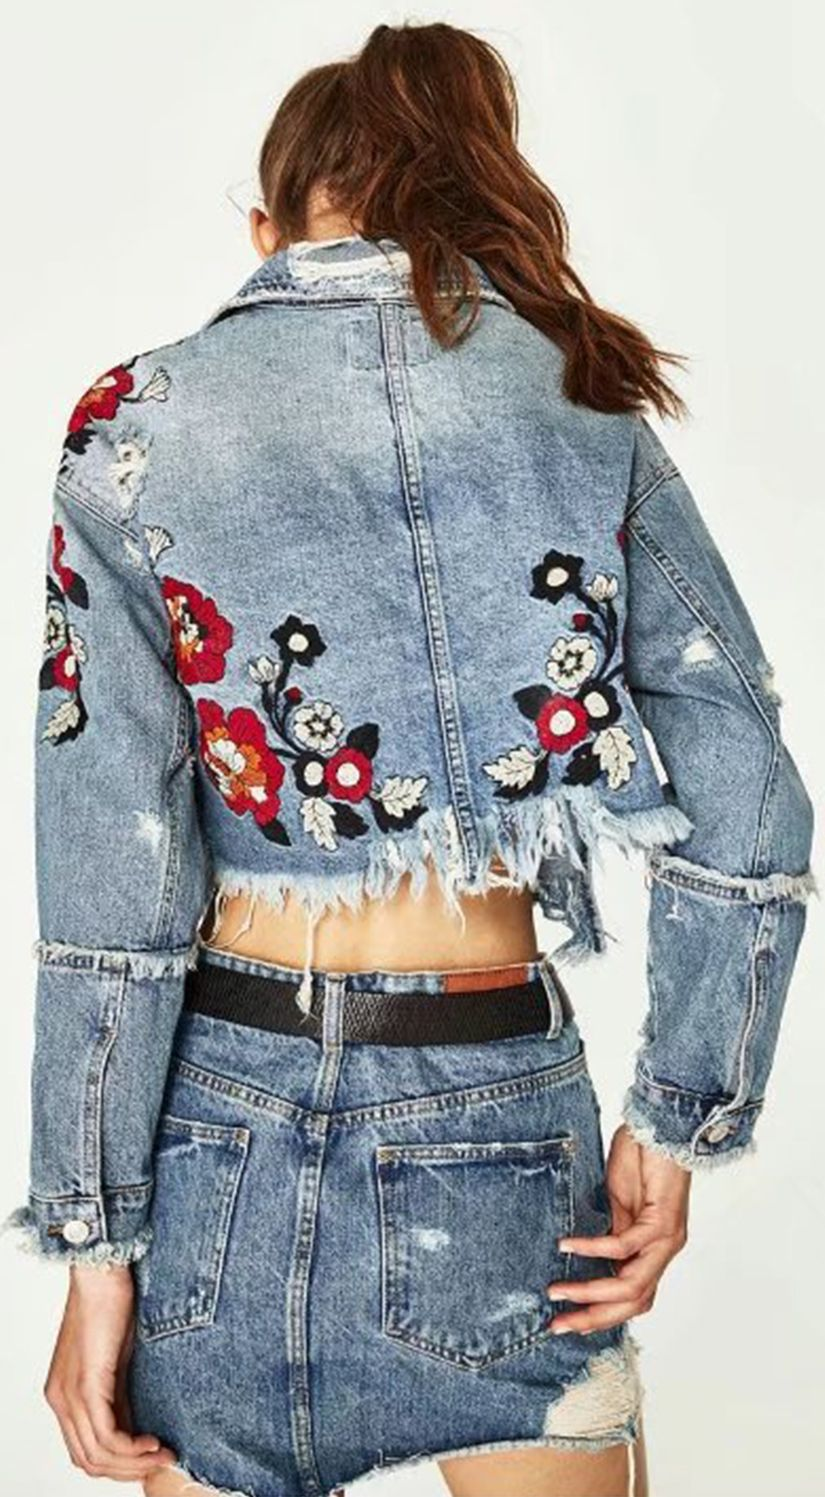 ad8a33560bb Long Sleeve Floral Embroidery Ripped Denim Jacket | Fashion Fun ...